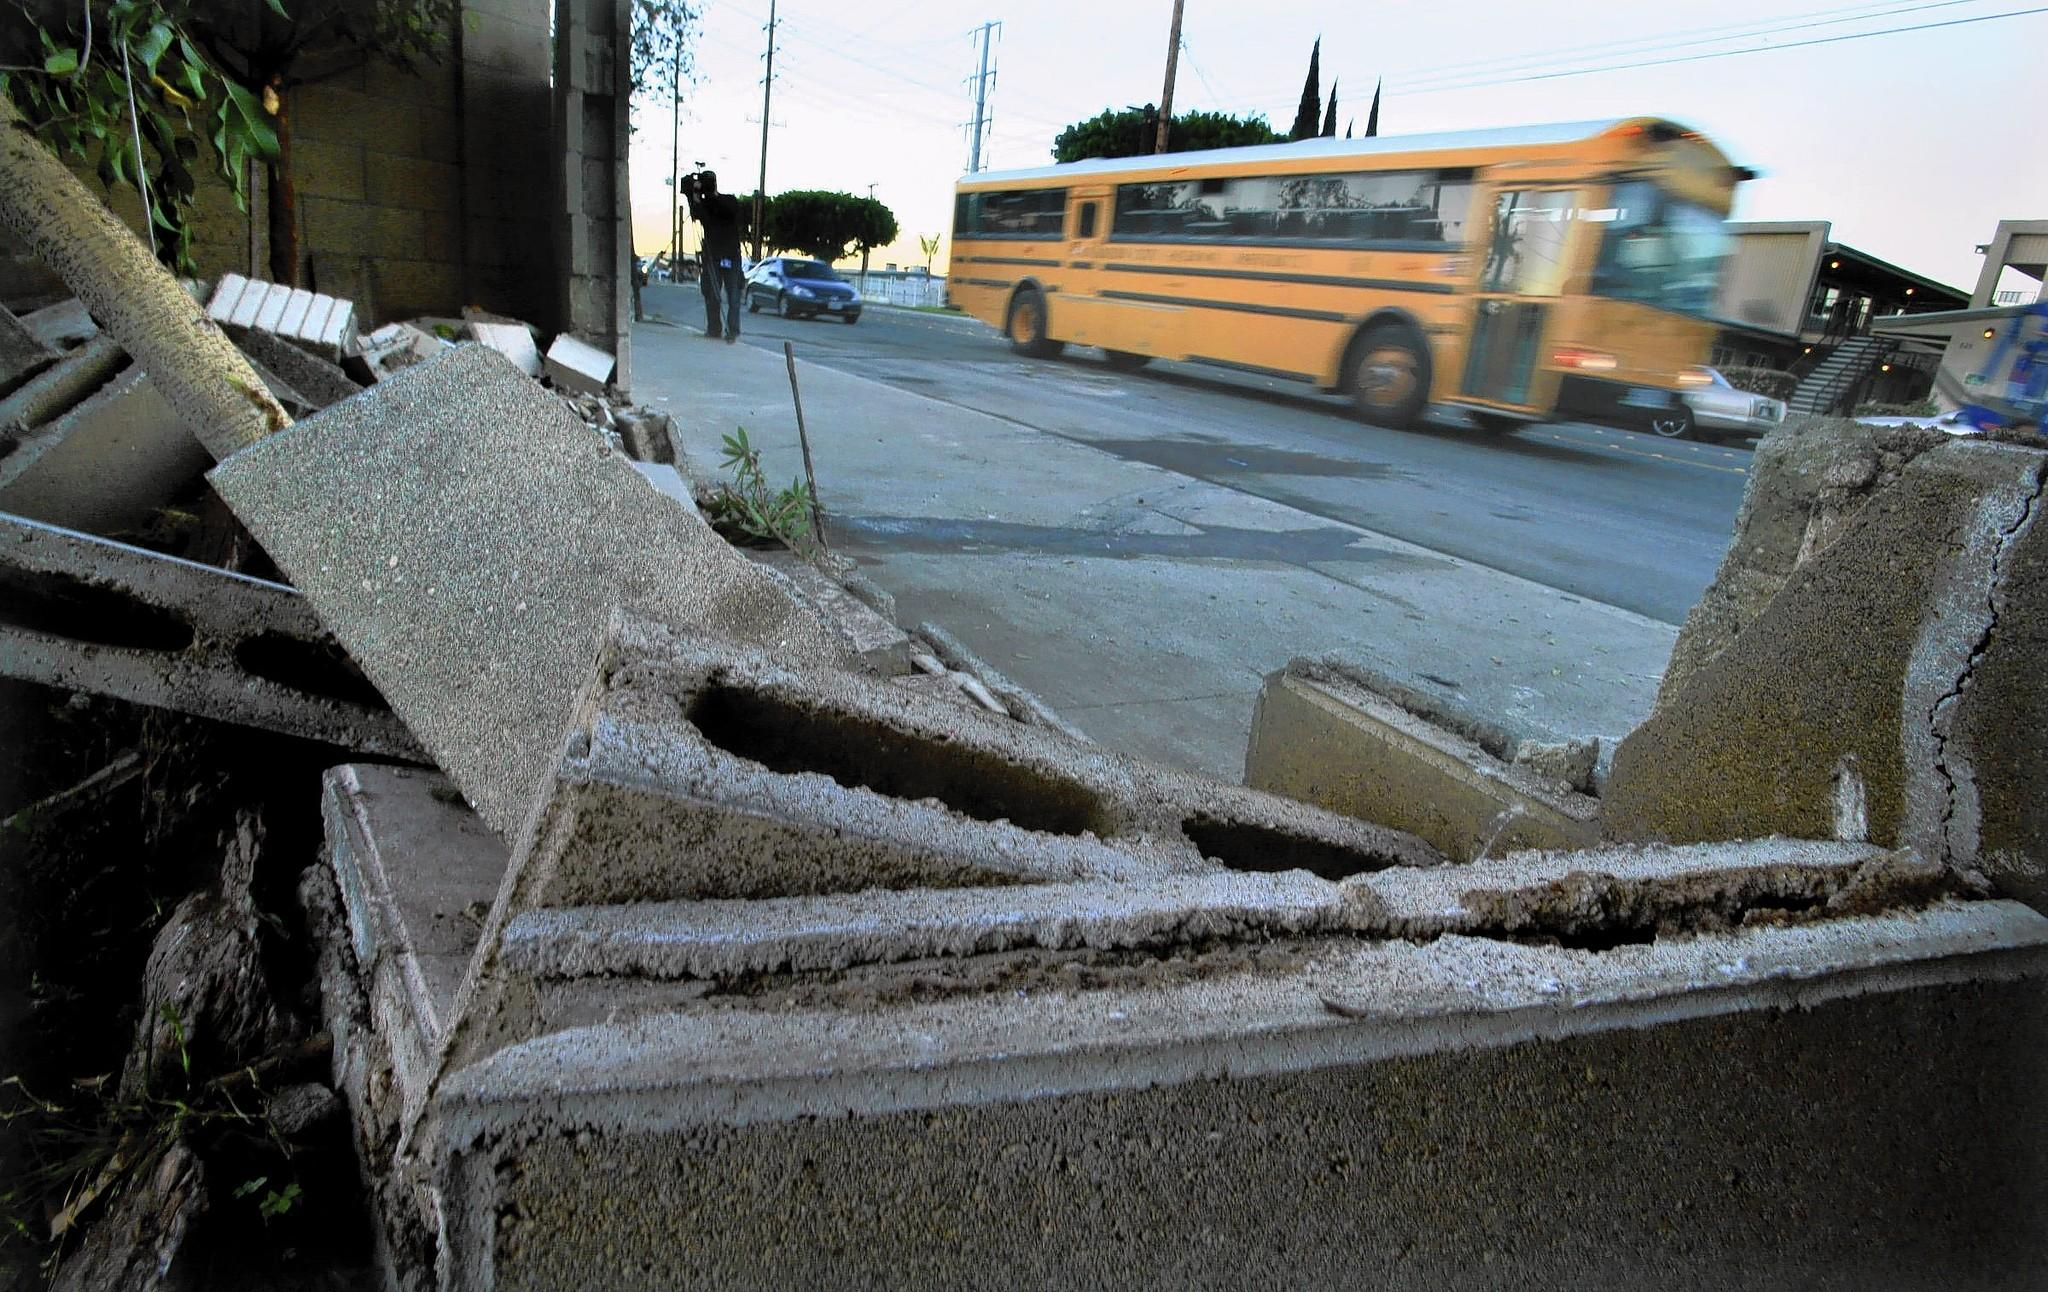 A school bus drives past the scene of a crash near the intersection of East and South streets in Anaheim that left two people dead and one injured Sunday.